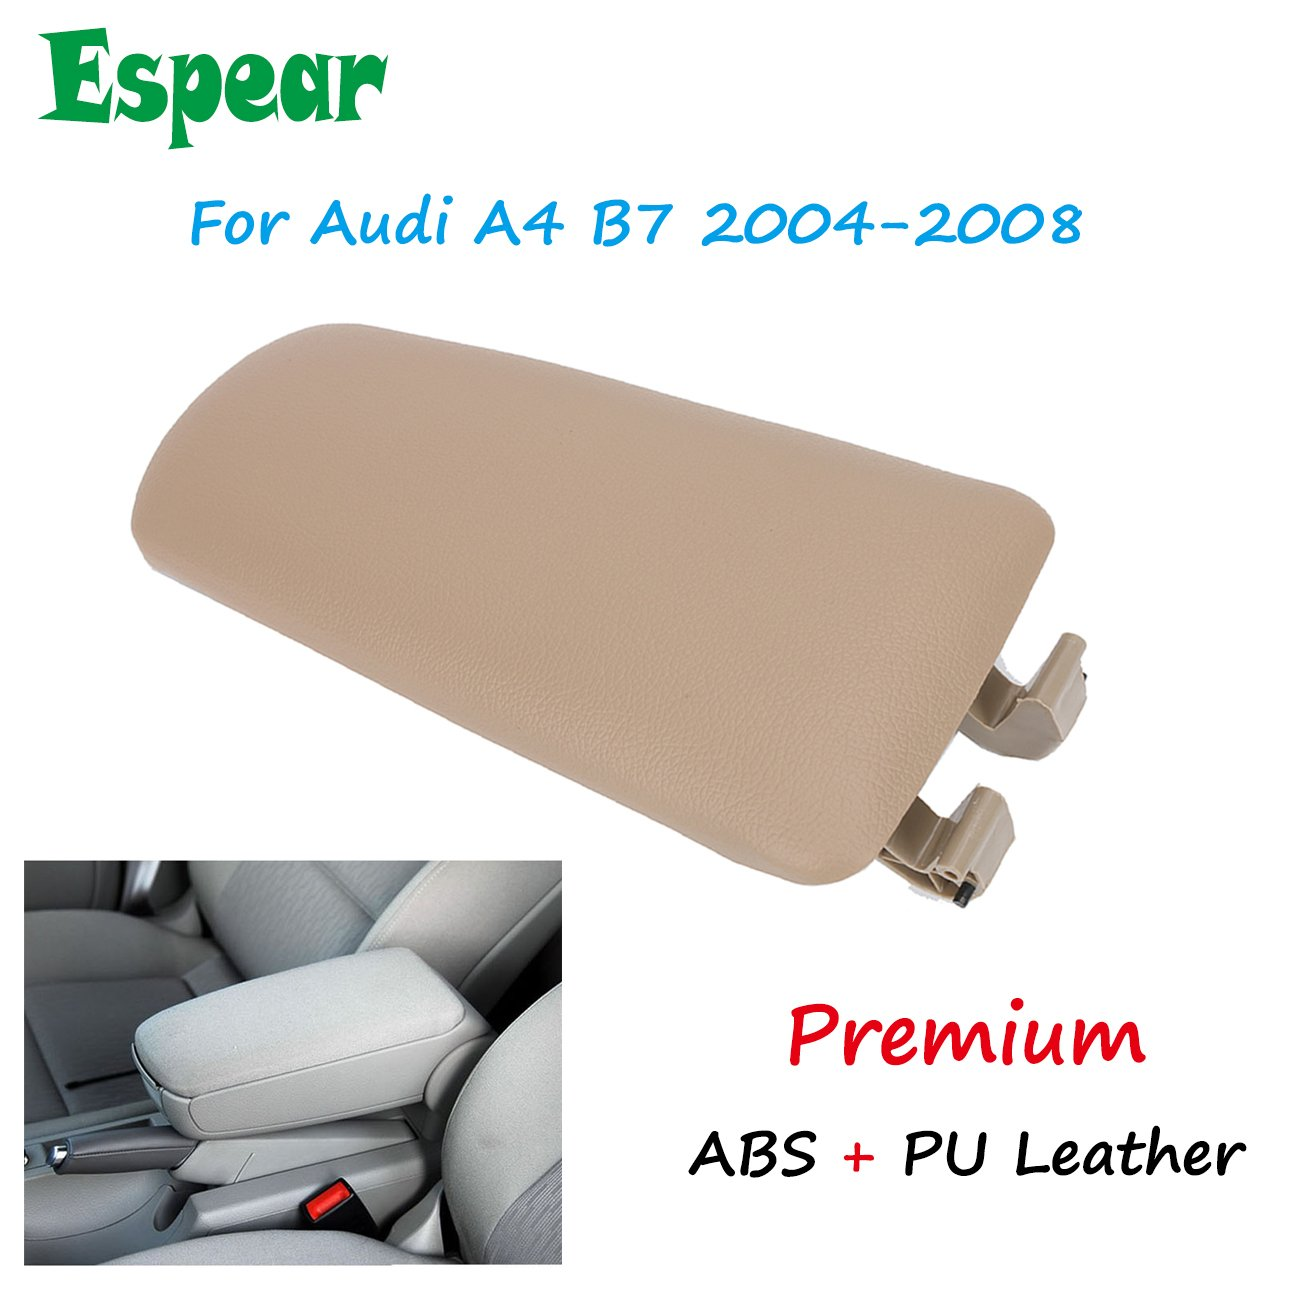 Black Armrest Center Box Console Lid Cover for 2004-2008 Audi A4 B7 ESPEAR